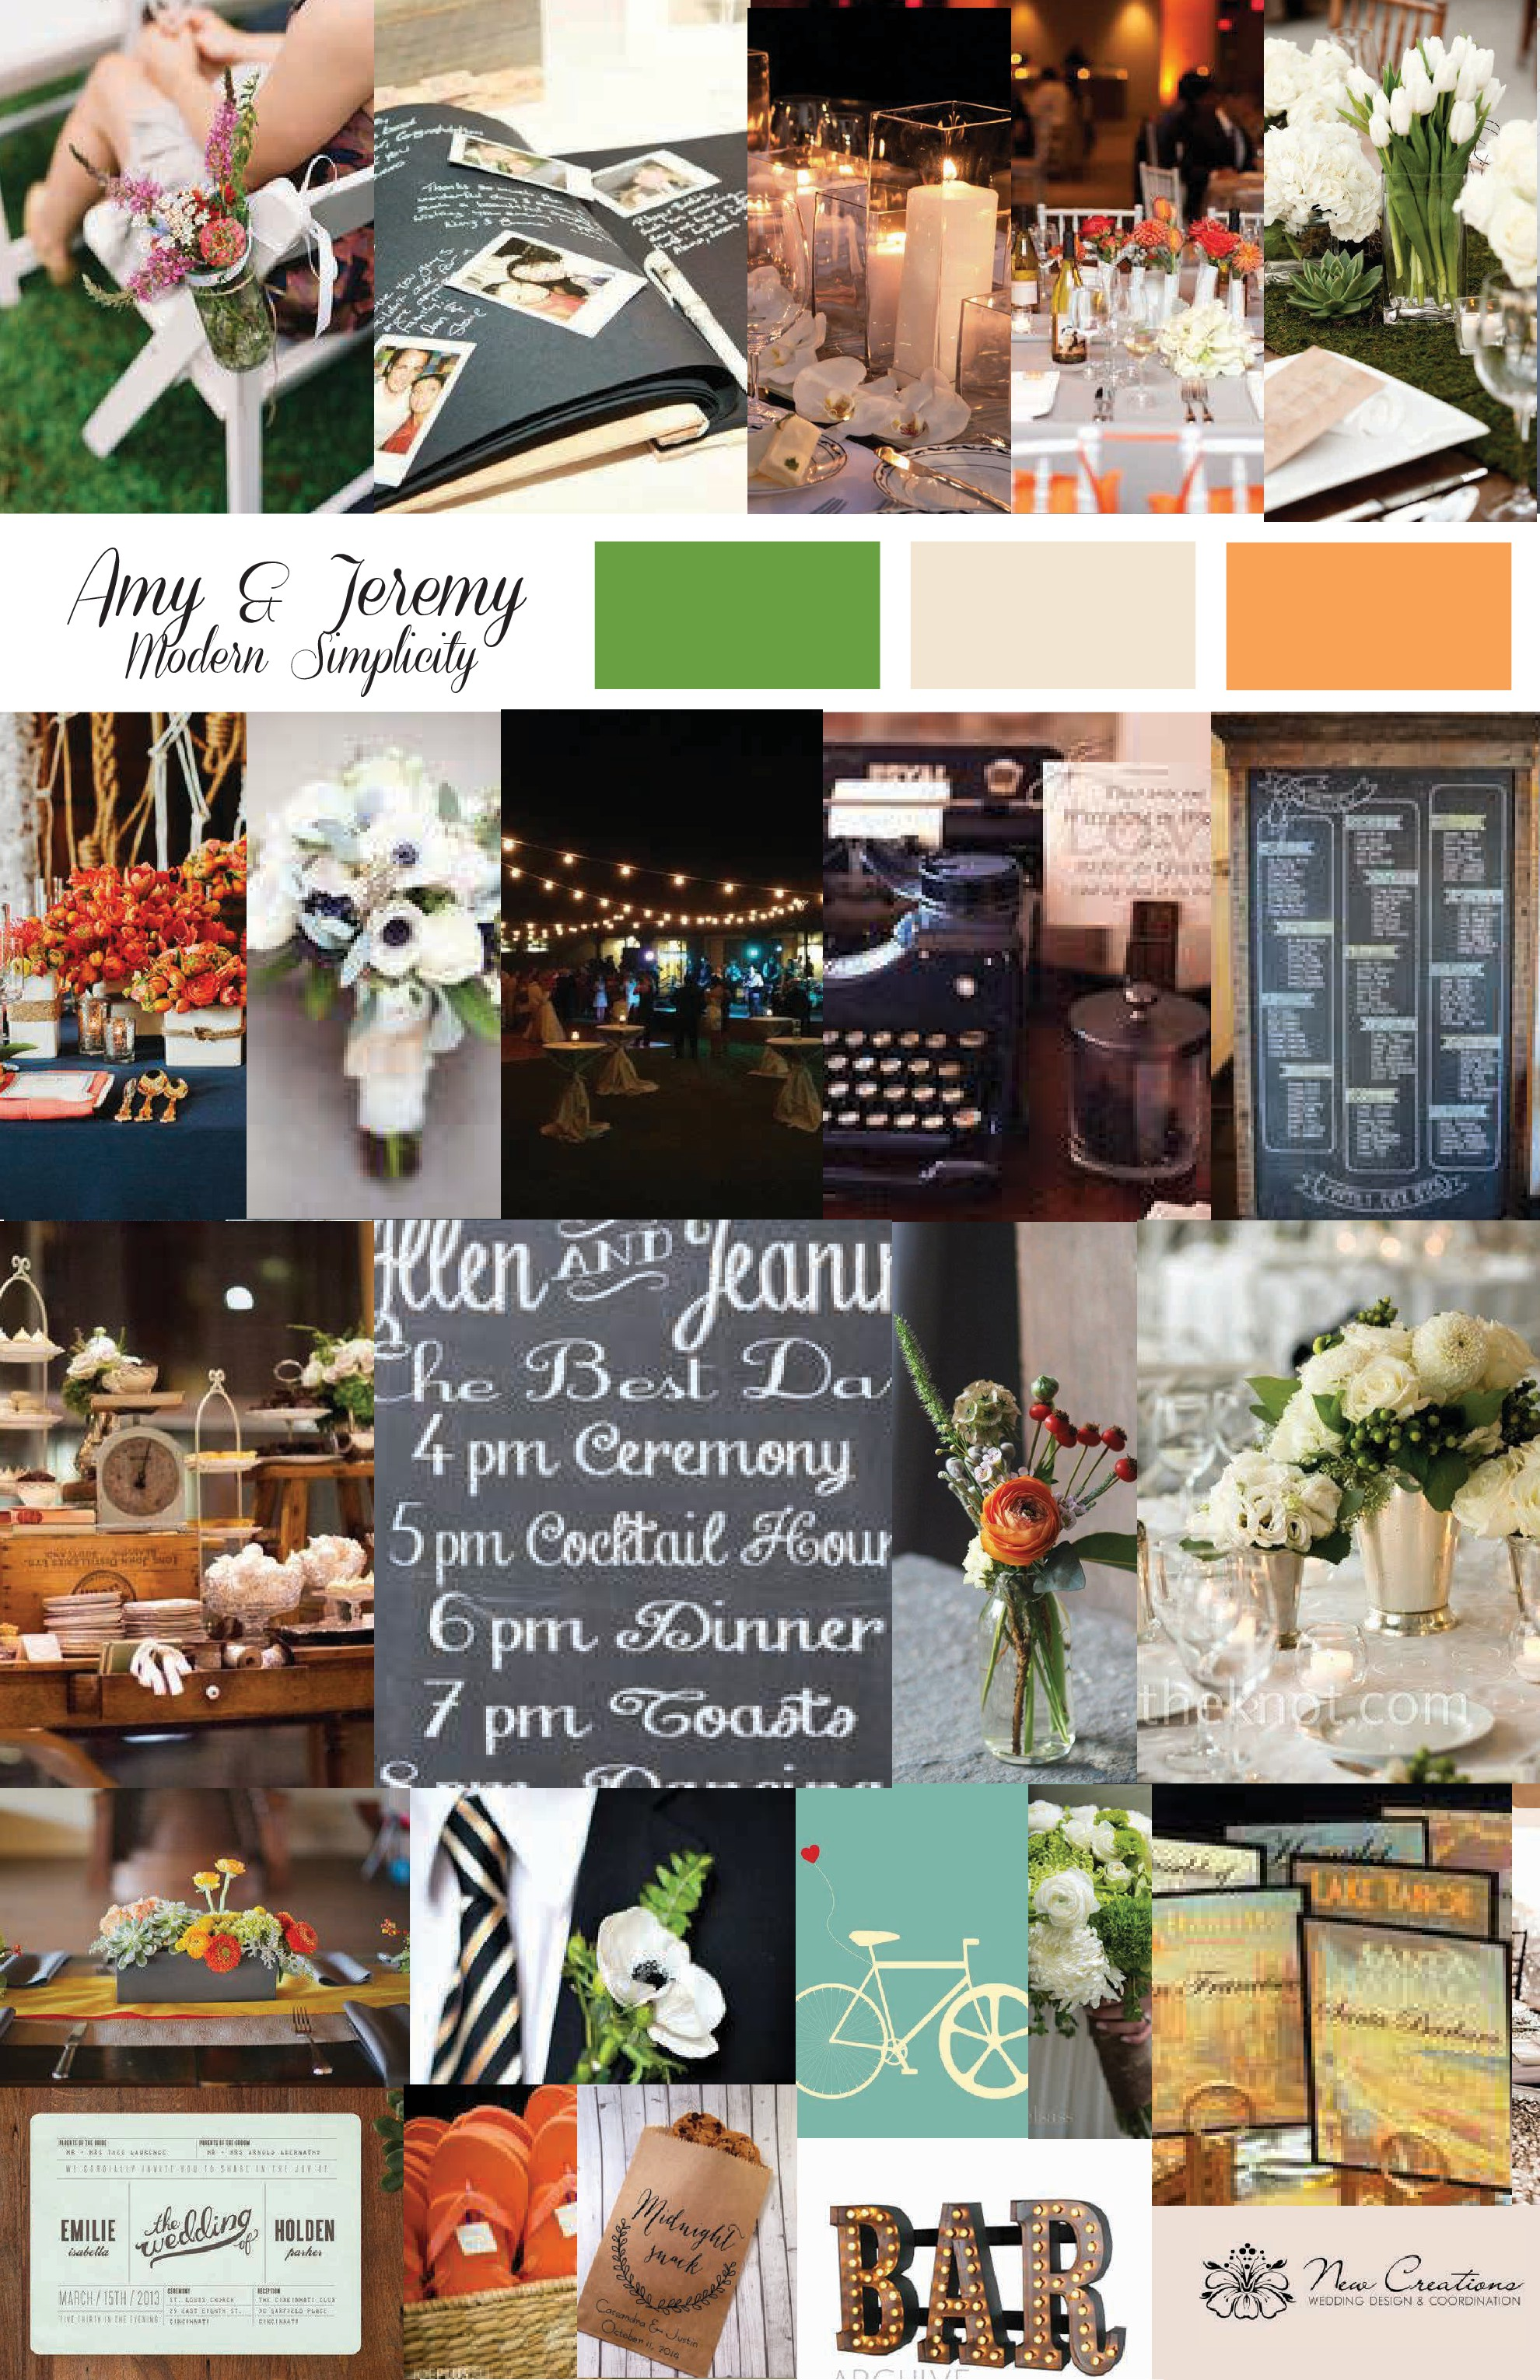 Inspiration board created by New Creations Weddings